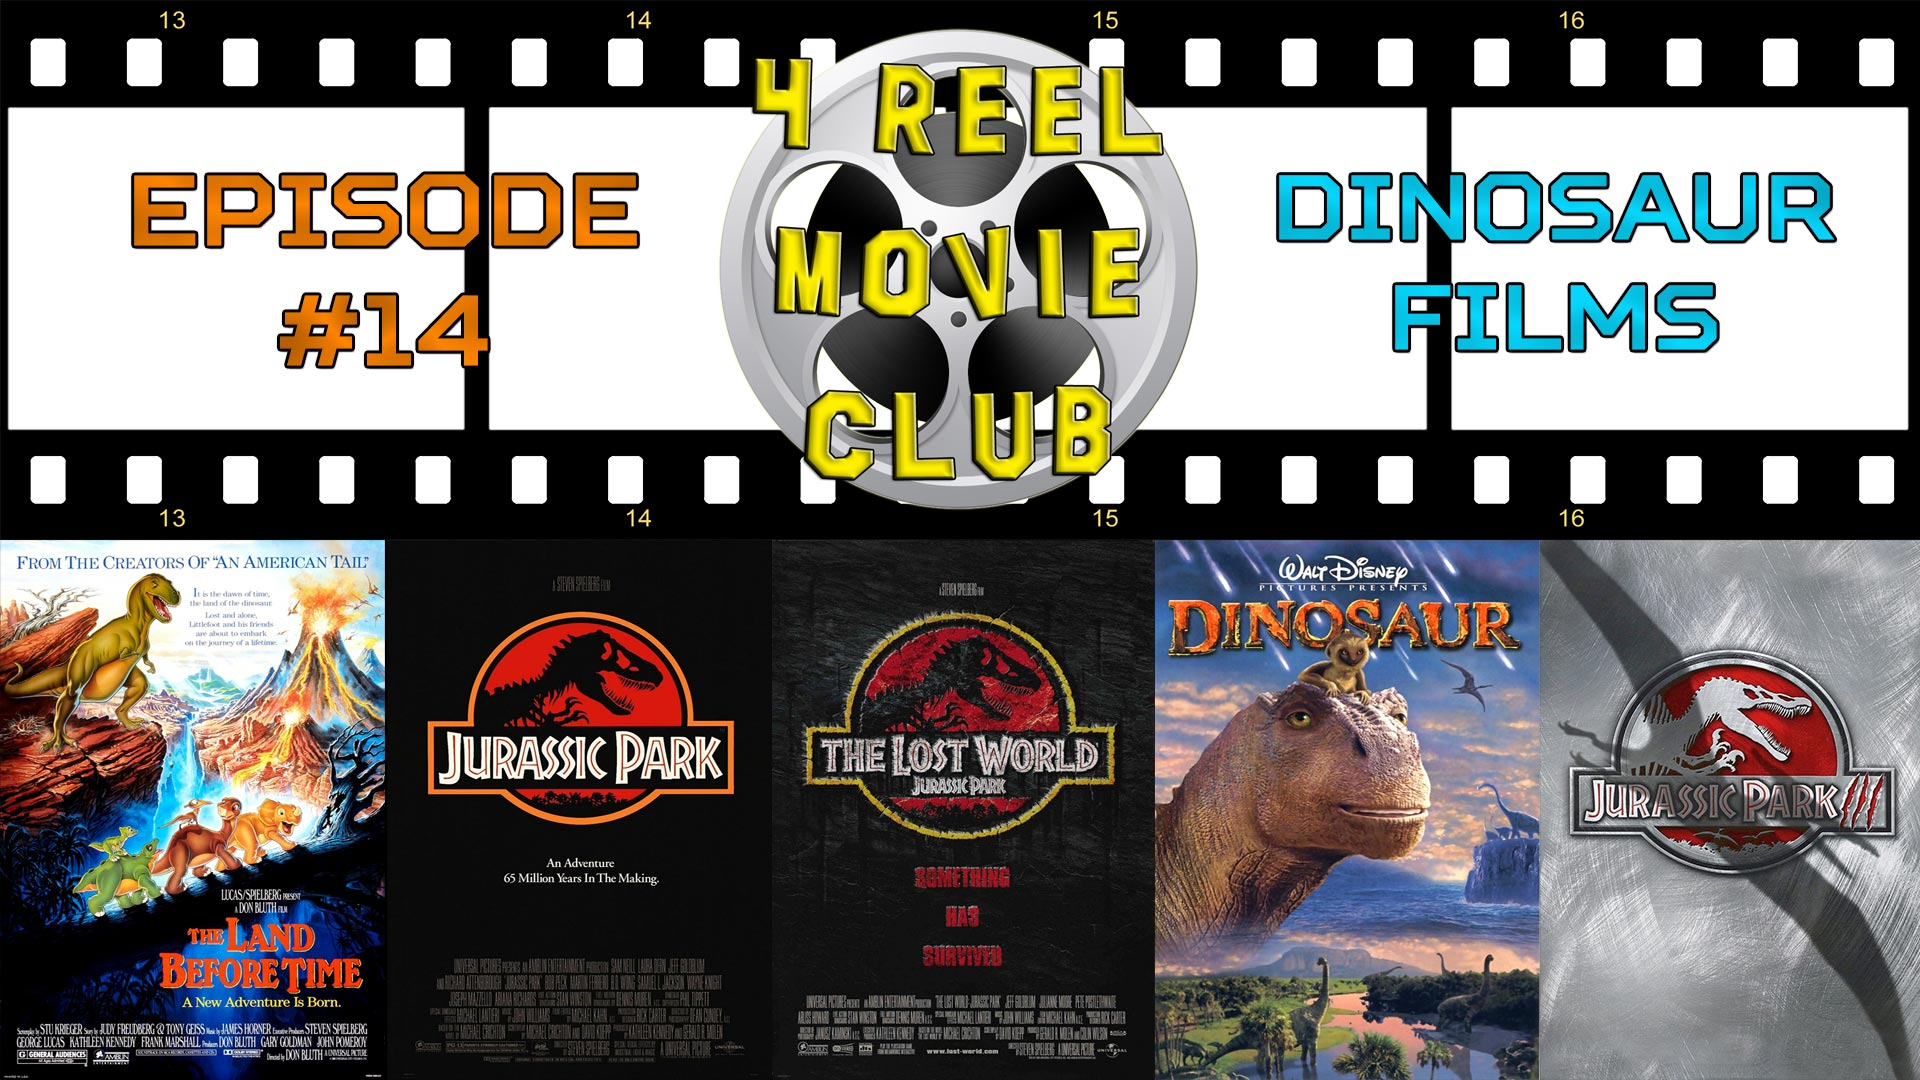 The Land Before Time, Jurassic Park, The Lost World: Jurassic Park, Dinosaur, Jurassic Park III